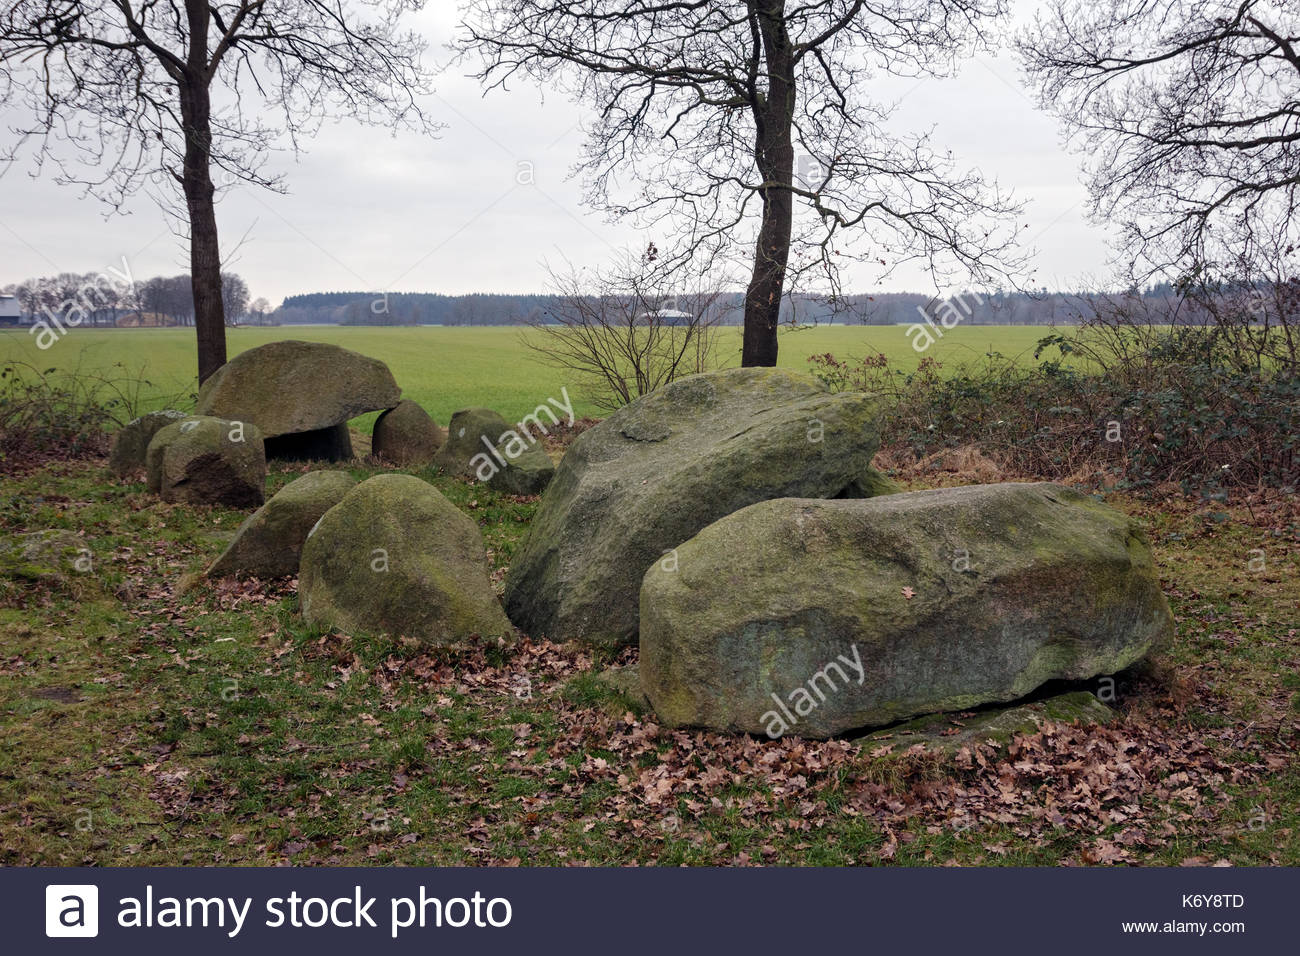 Dolmen D51, an ancient megalithic tomb in the Netherlands on a cloudy day in winter. - Stock Image